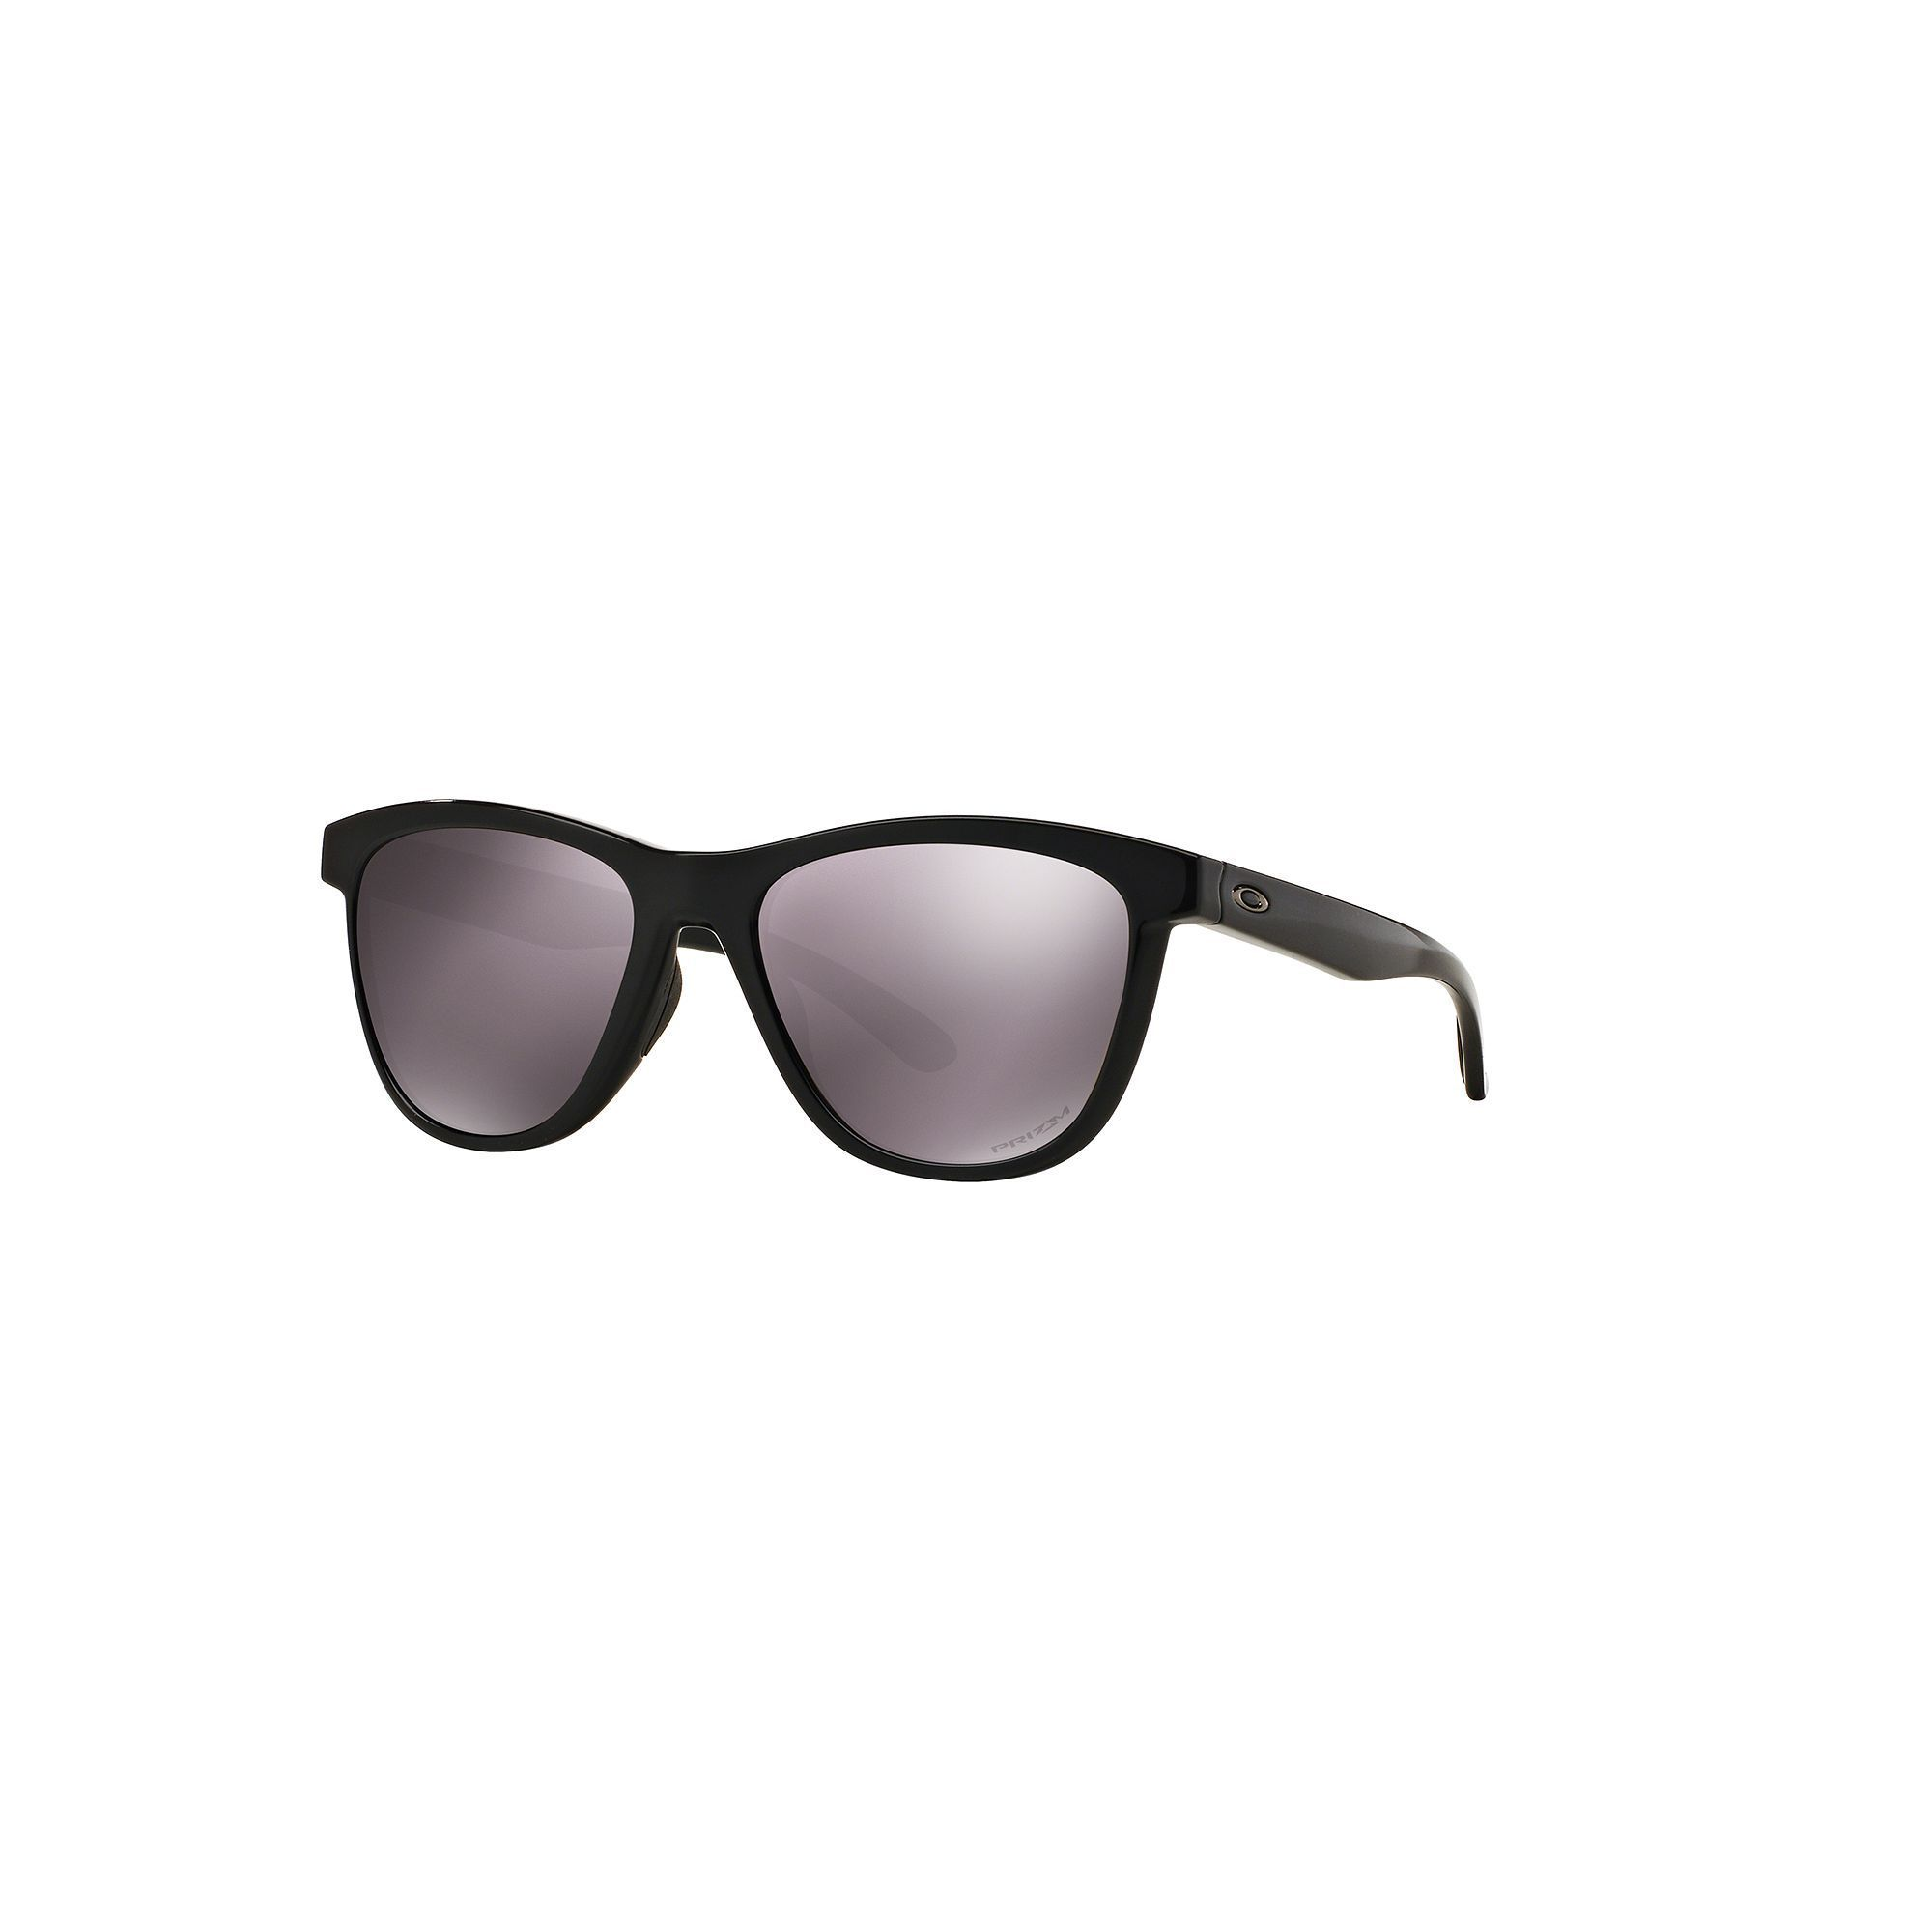 ce54d41d52 Oakley Moonlighter OO9320 53mm Square Prizm Daily Polarized Sunglasses